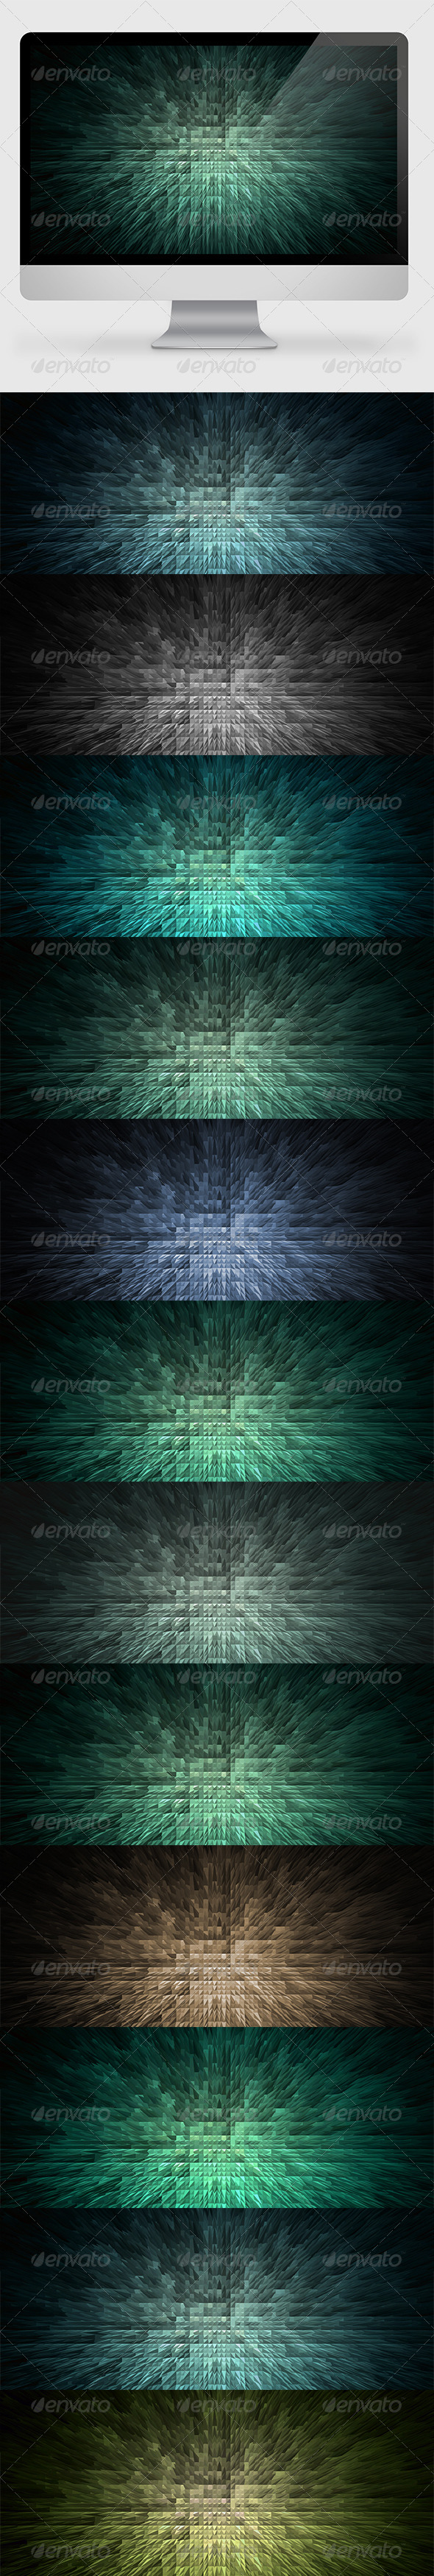 GraphicRiver Pyramids Backgrounds Wallpapers 7057263